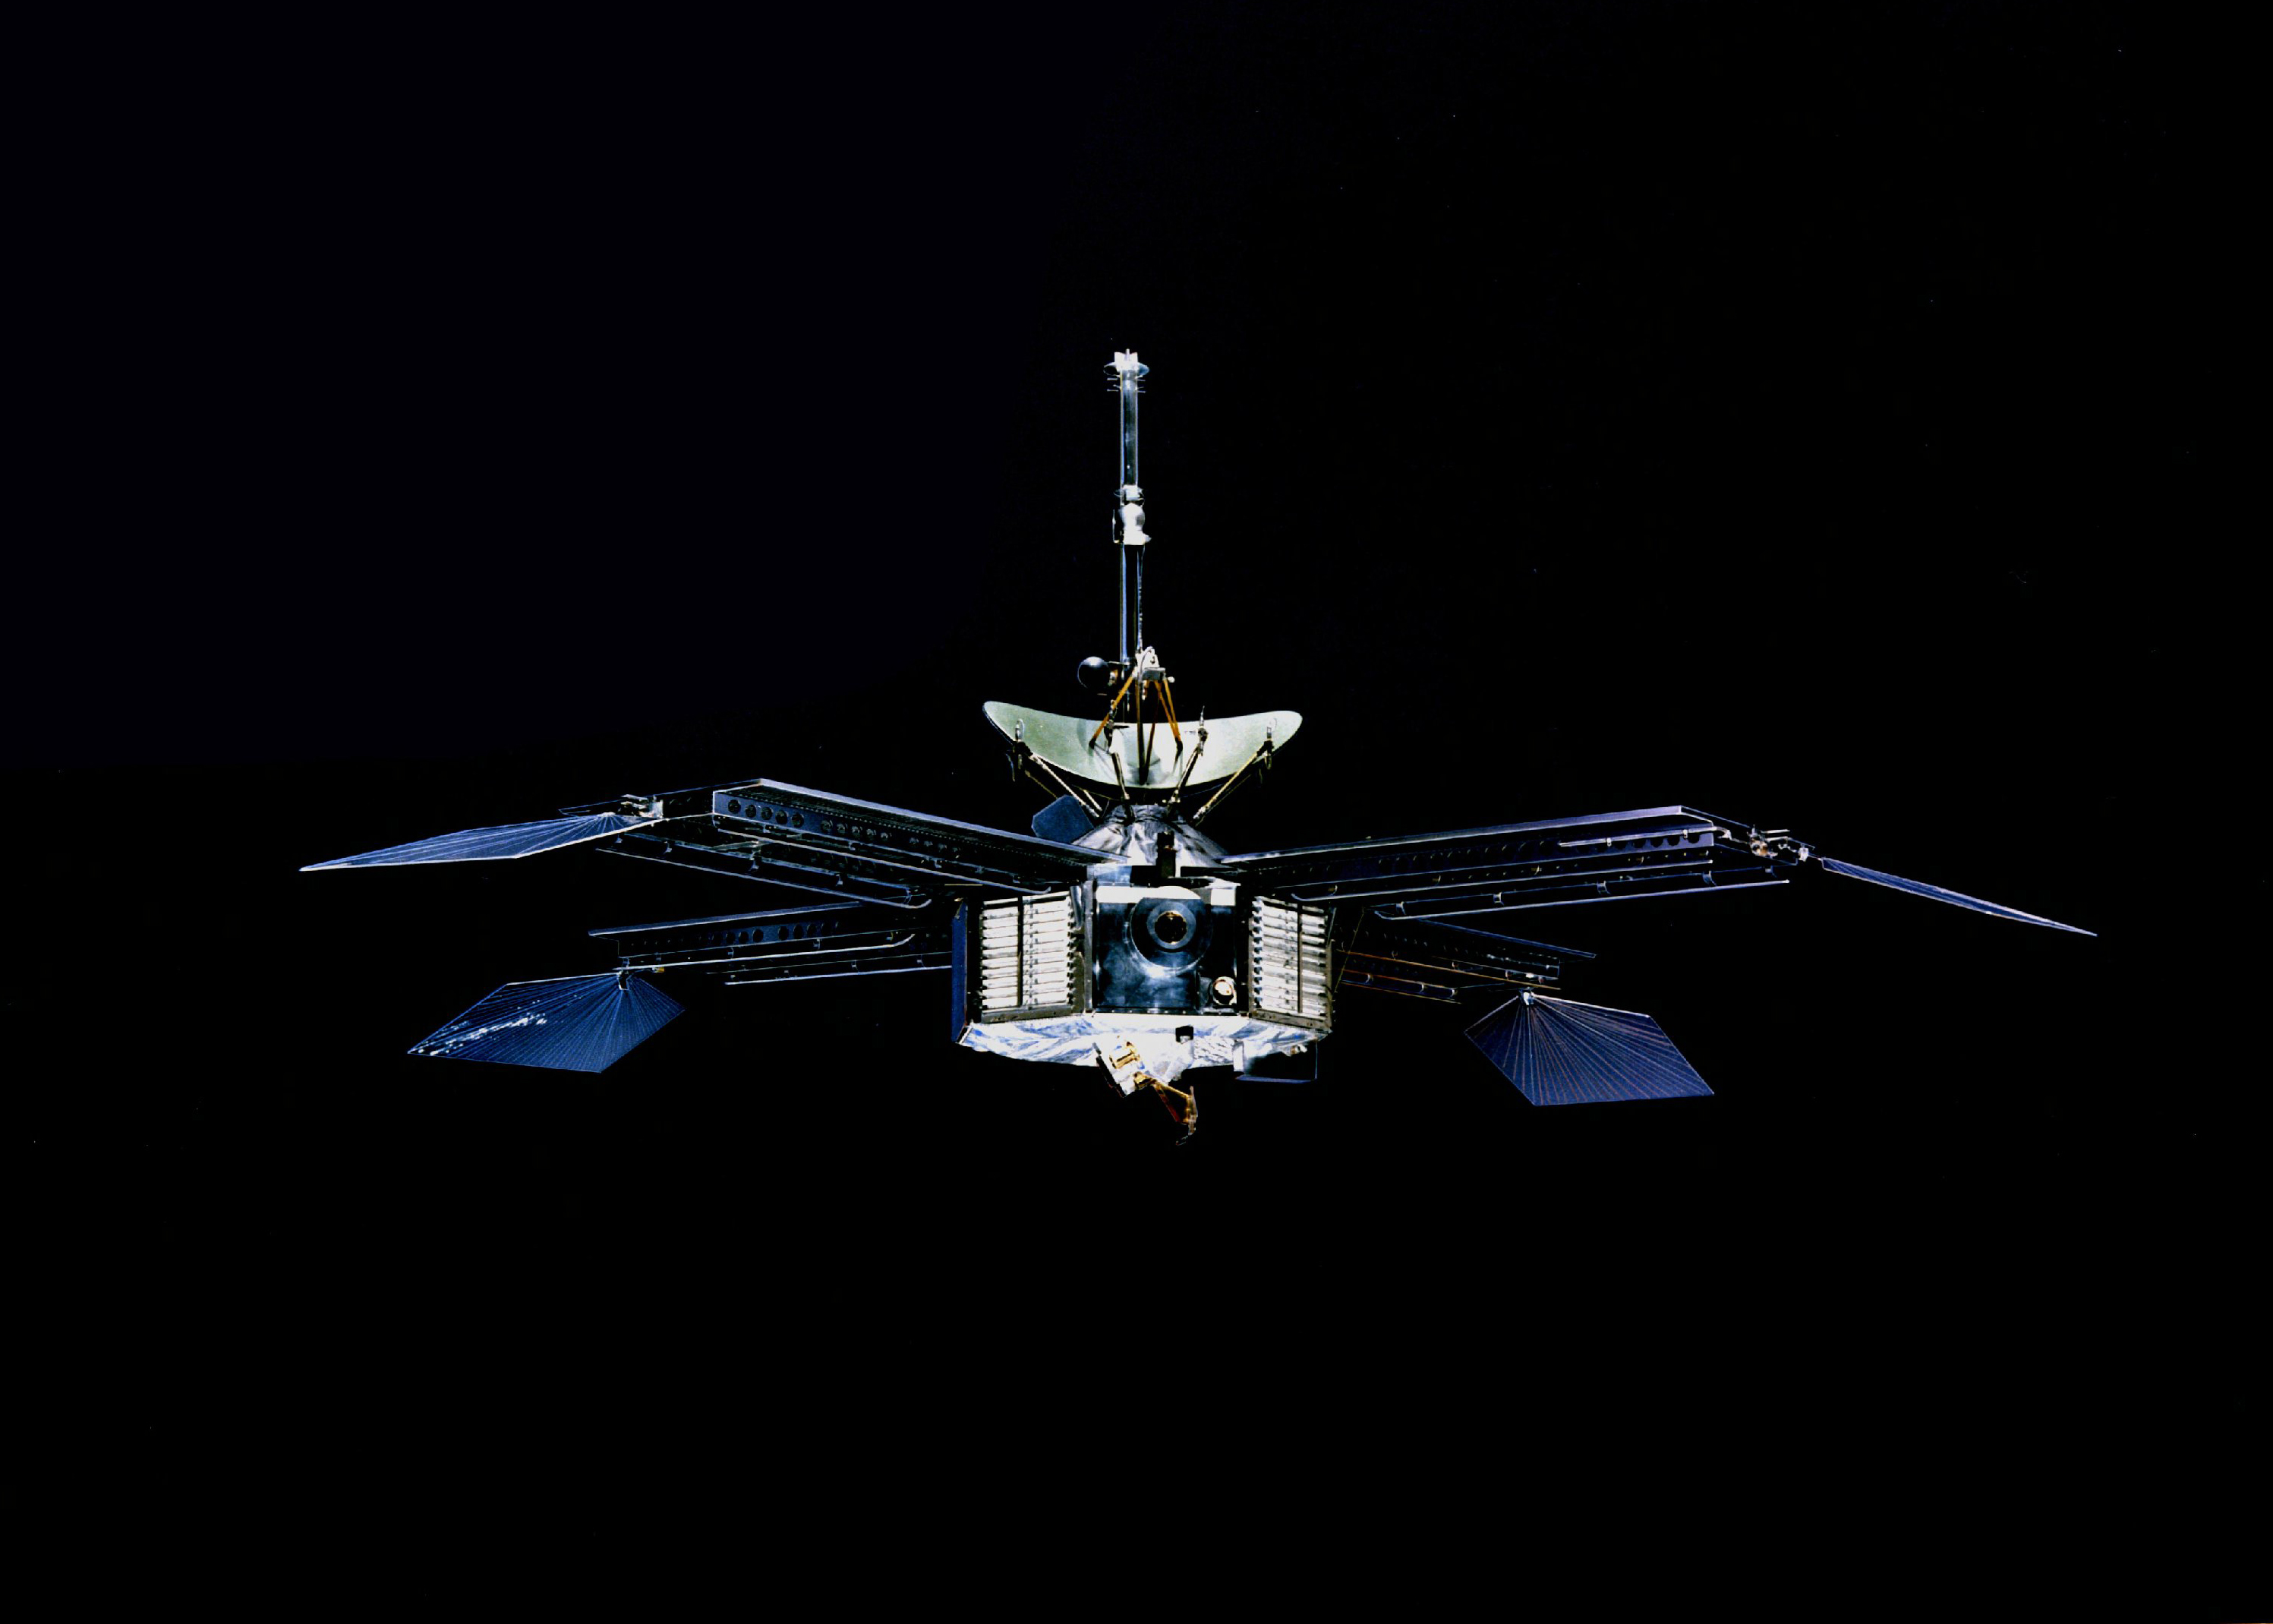 mariner 9 spacecraft - photo #21